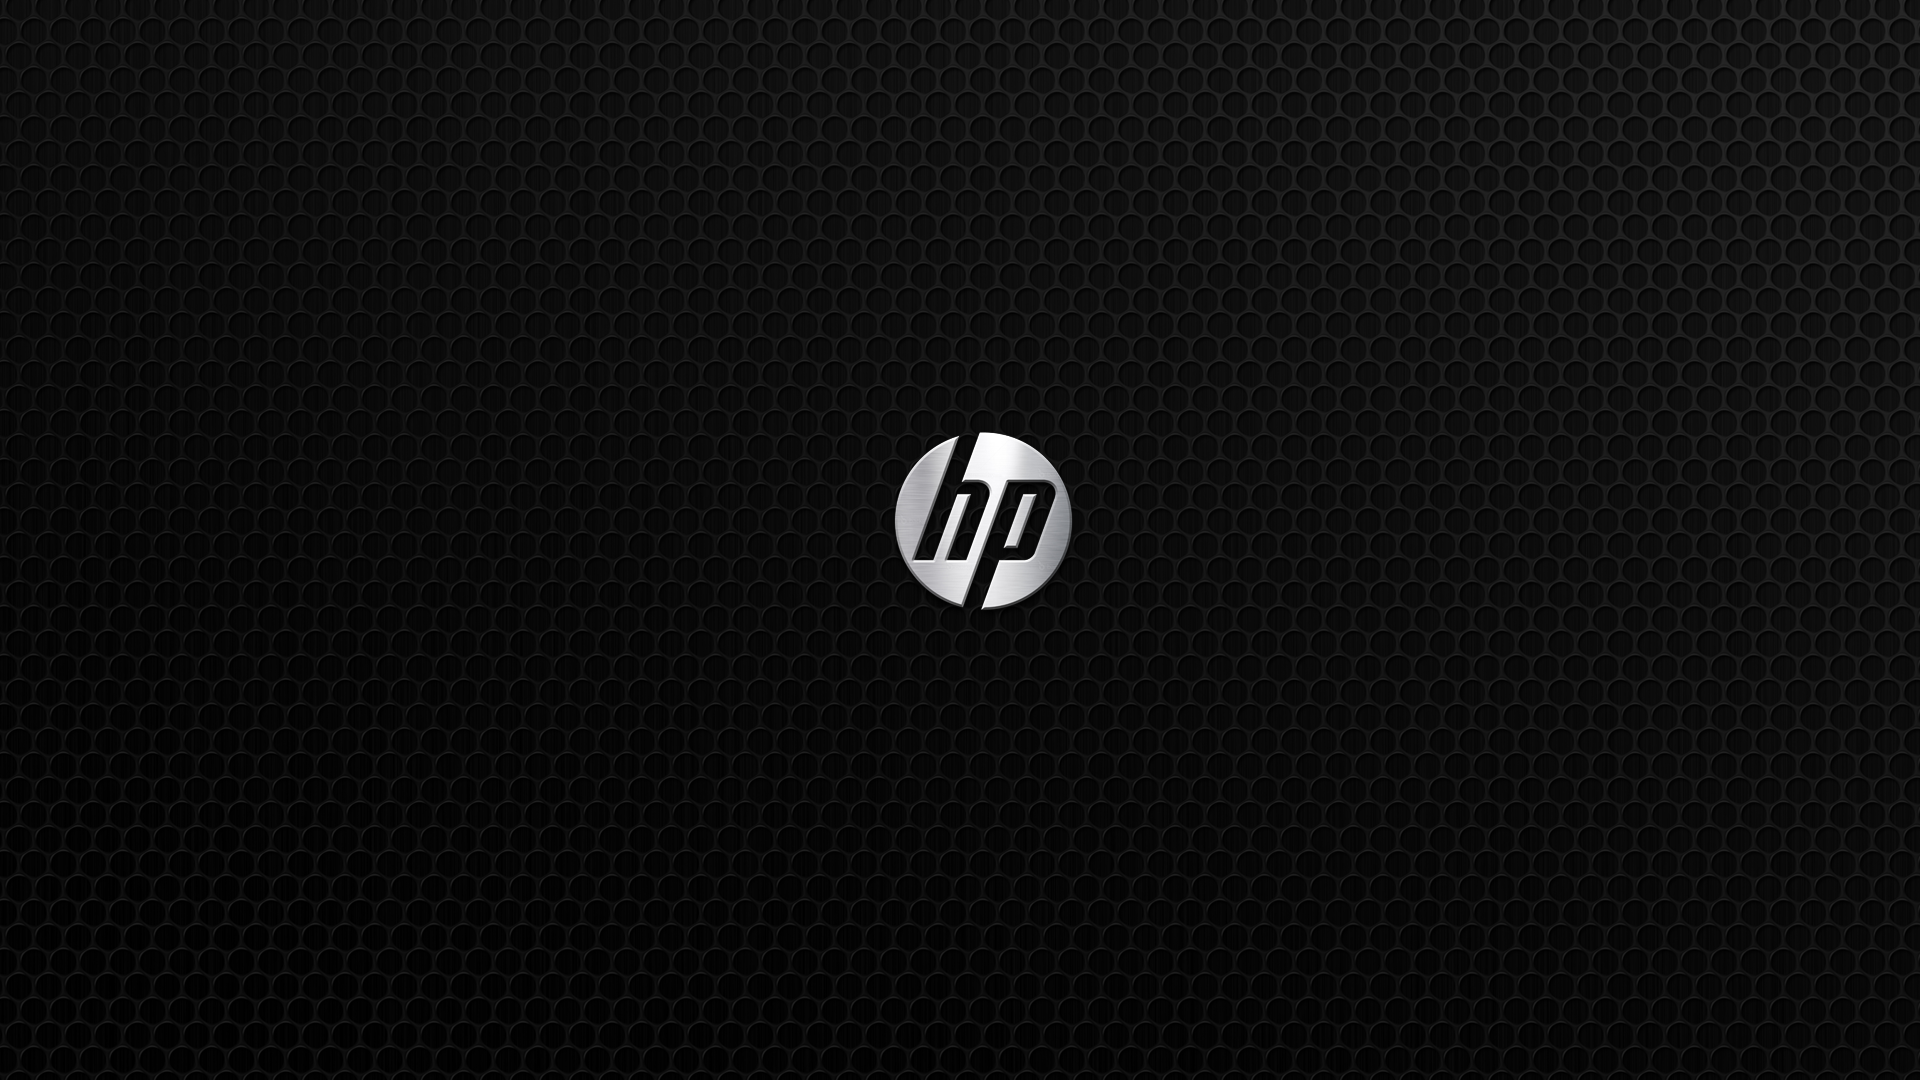 Hp Black Wallpapers Top Free Hp Black Backgrounds Wallpaperaccess